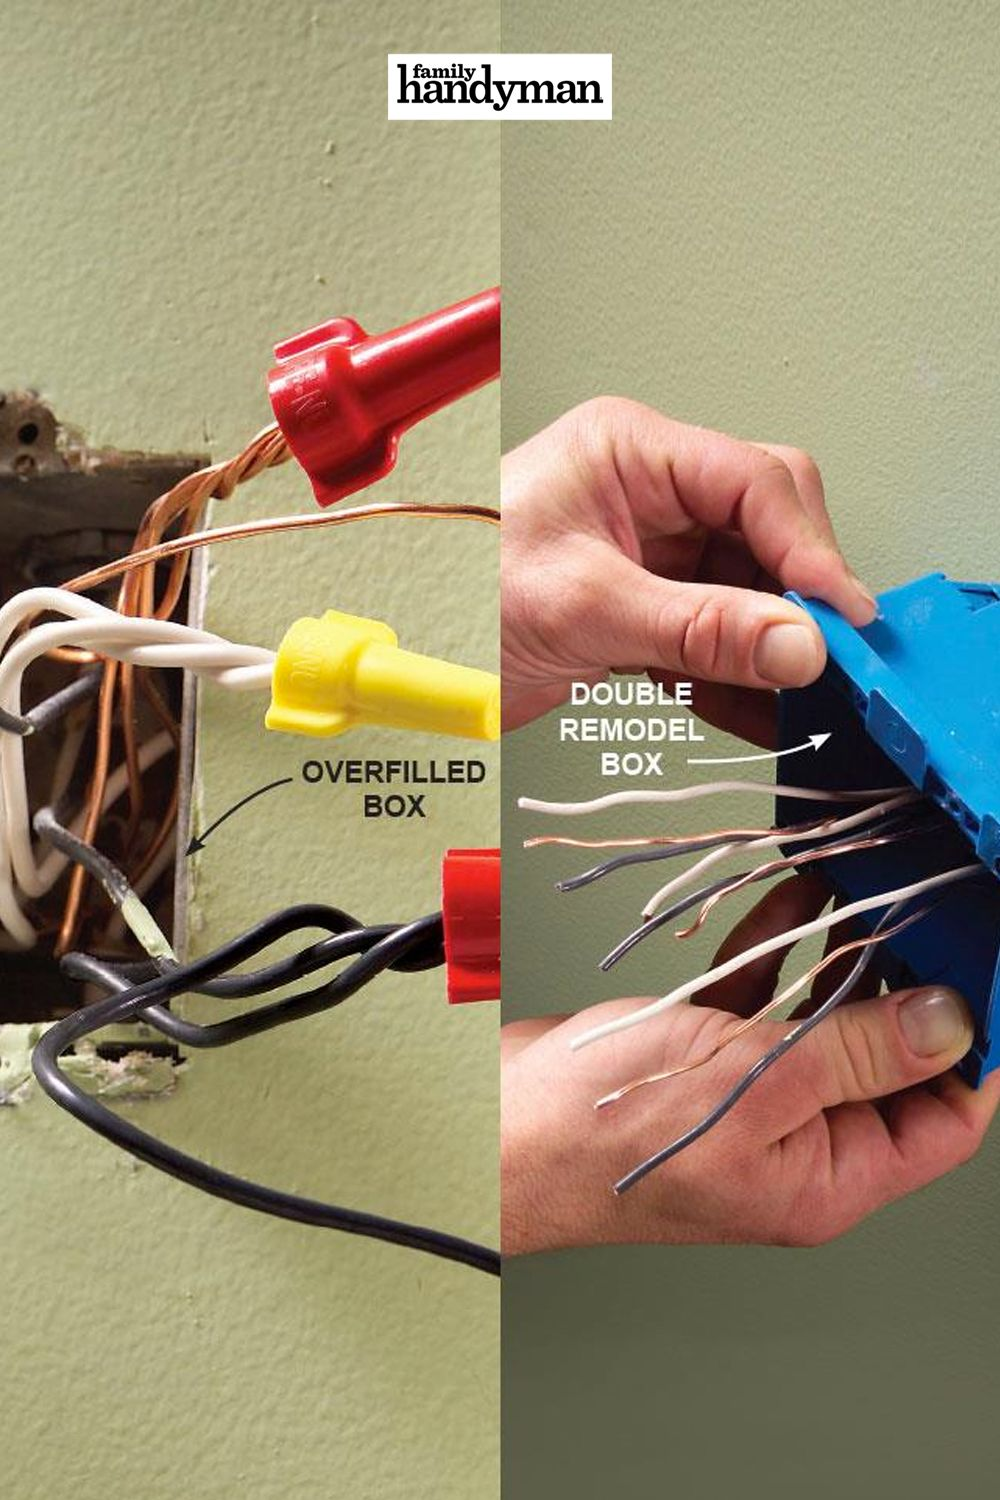 15 Things You Should Know Before Doing DIY Electrical Work